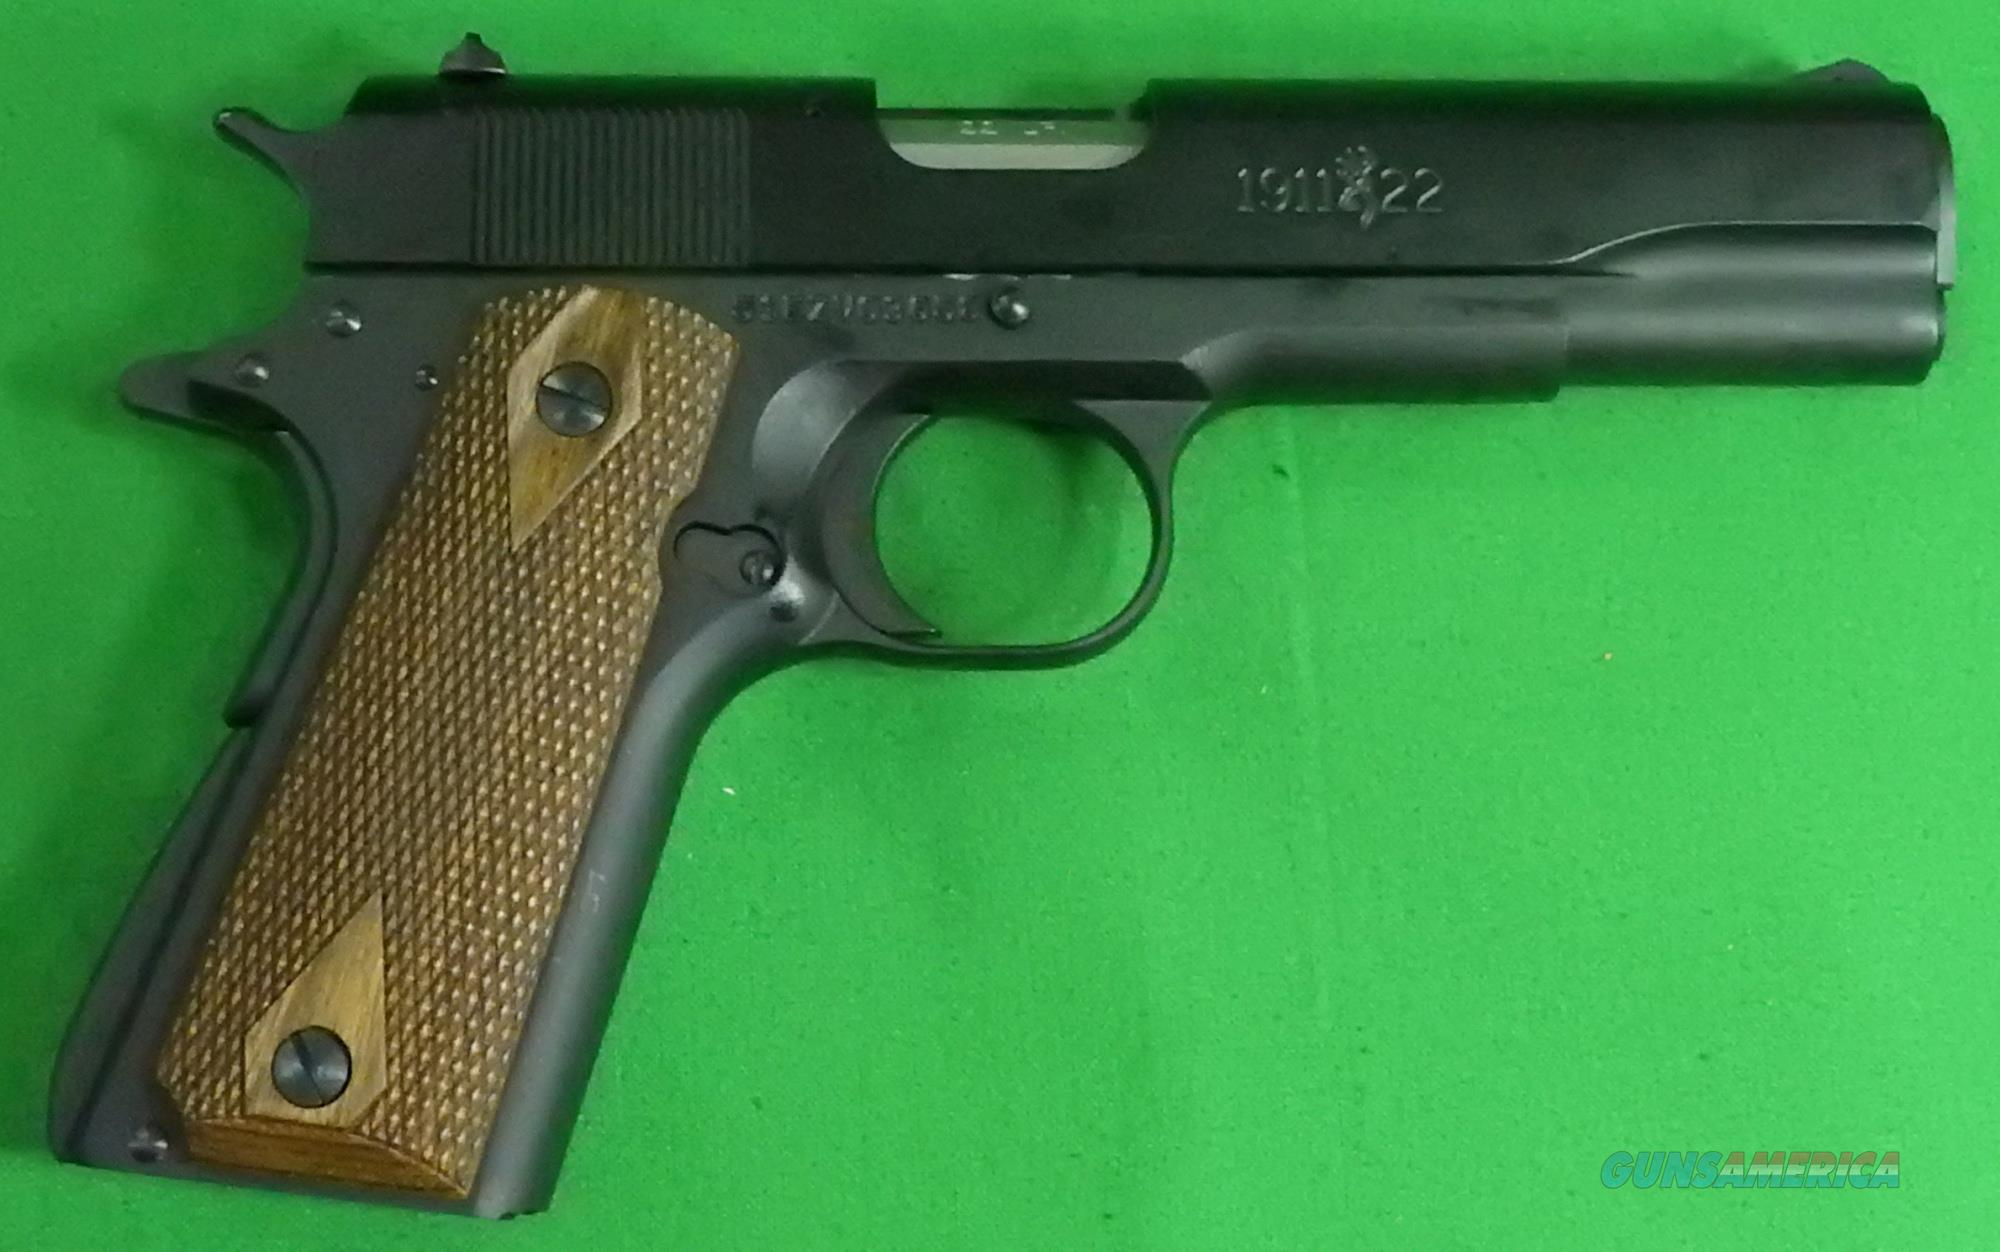 1911 A1 Full Size 22LR 4.2In  051802490  Guns > Pistols > Browning Pistols > Other Autos